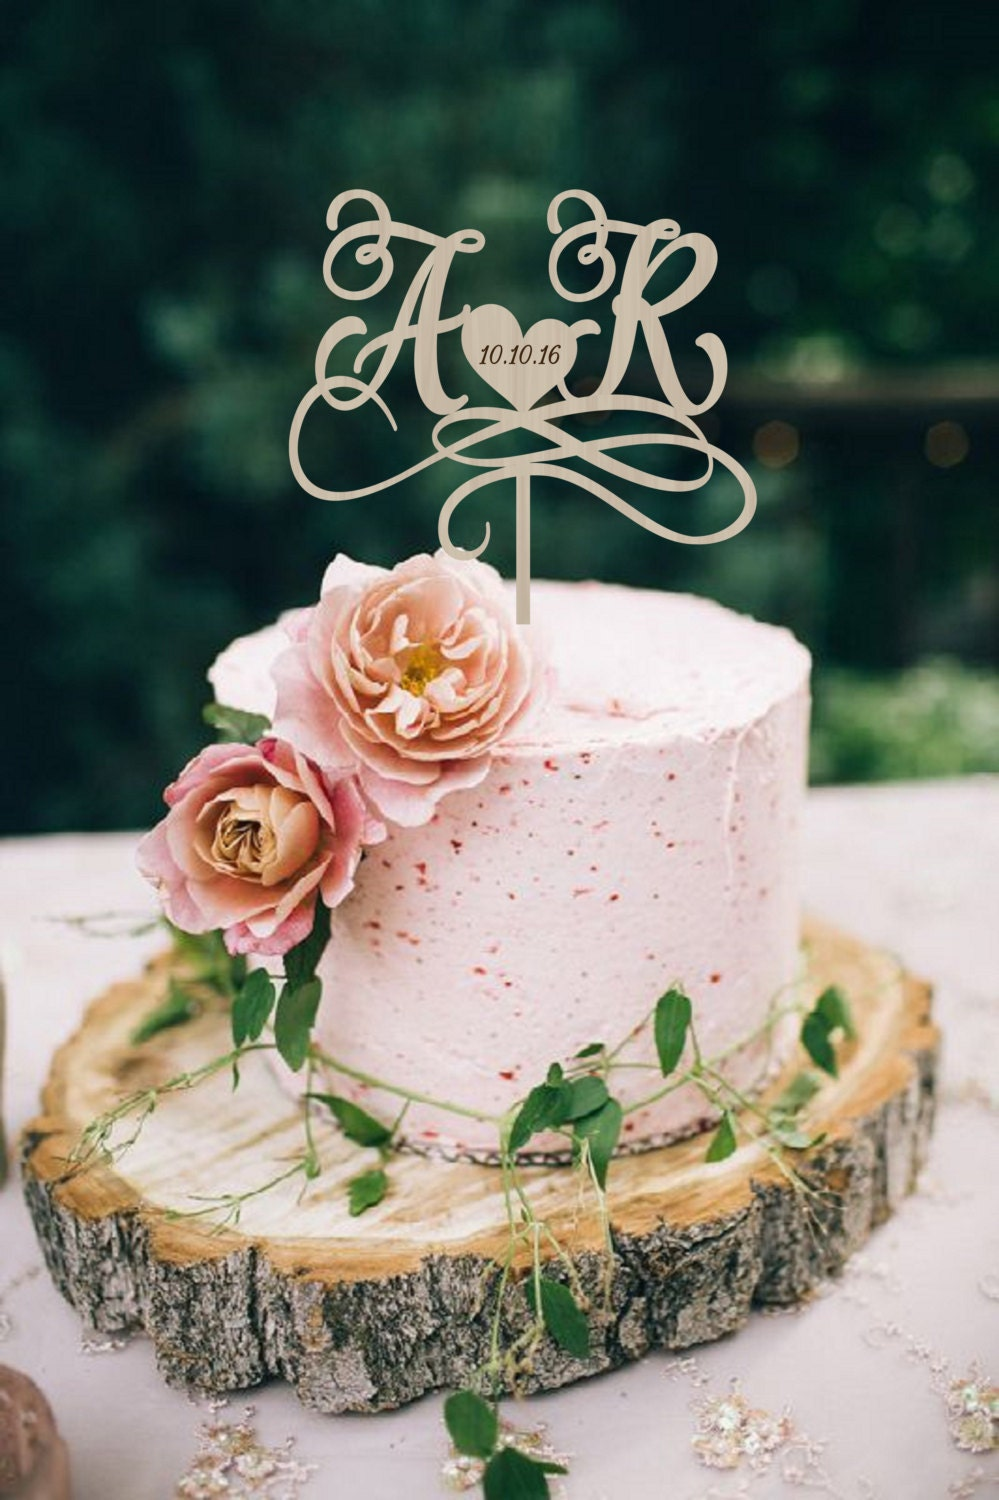 image of wedding cake with name wedding cake topper initials cake topper names 16319